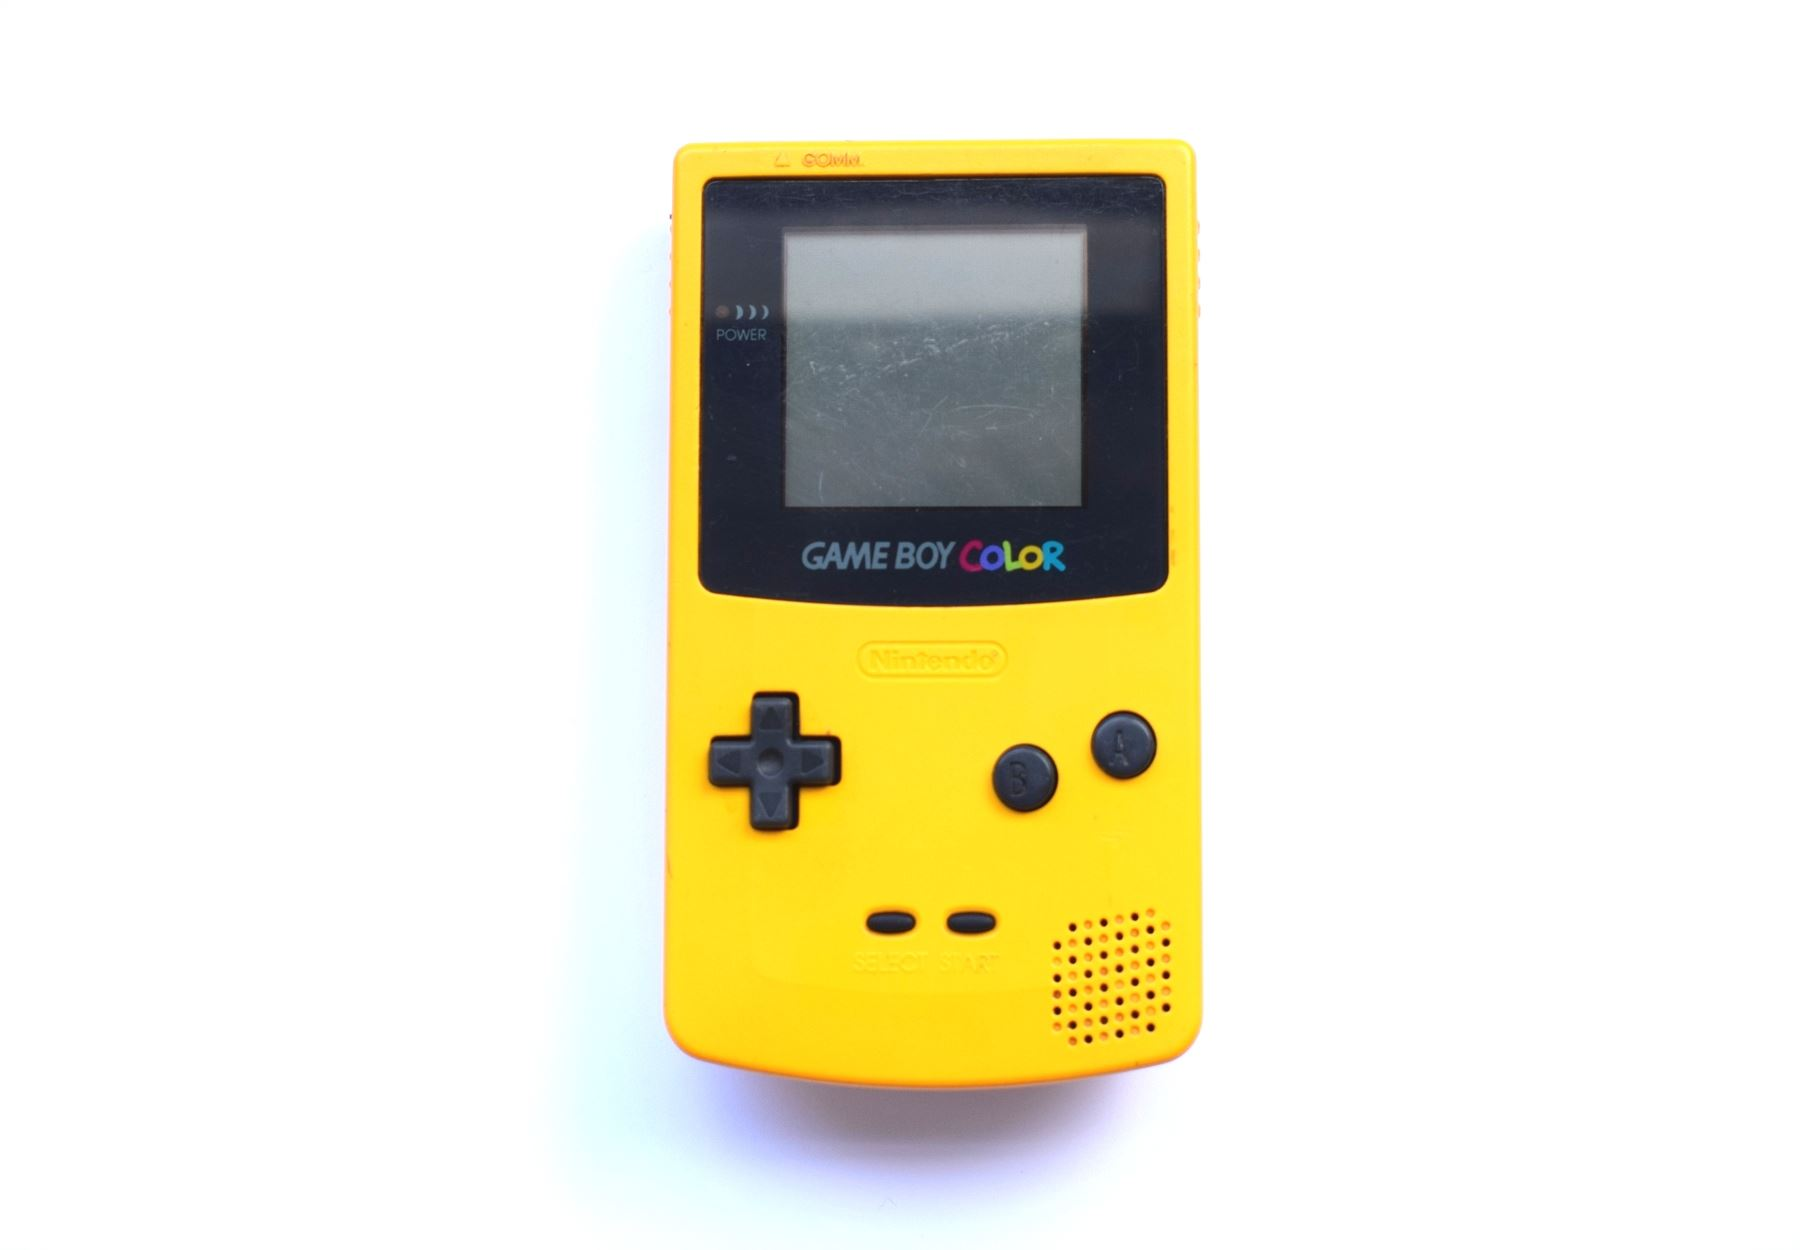 Gameboy colour - BEST 90S TOYS